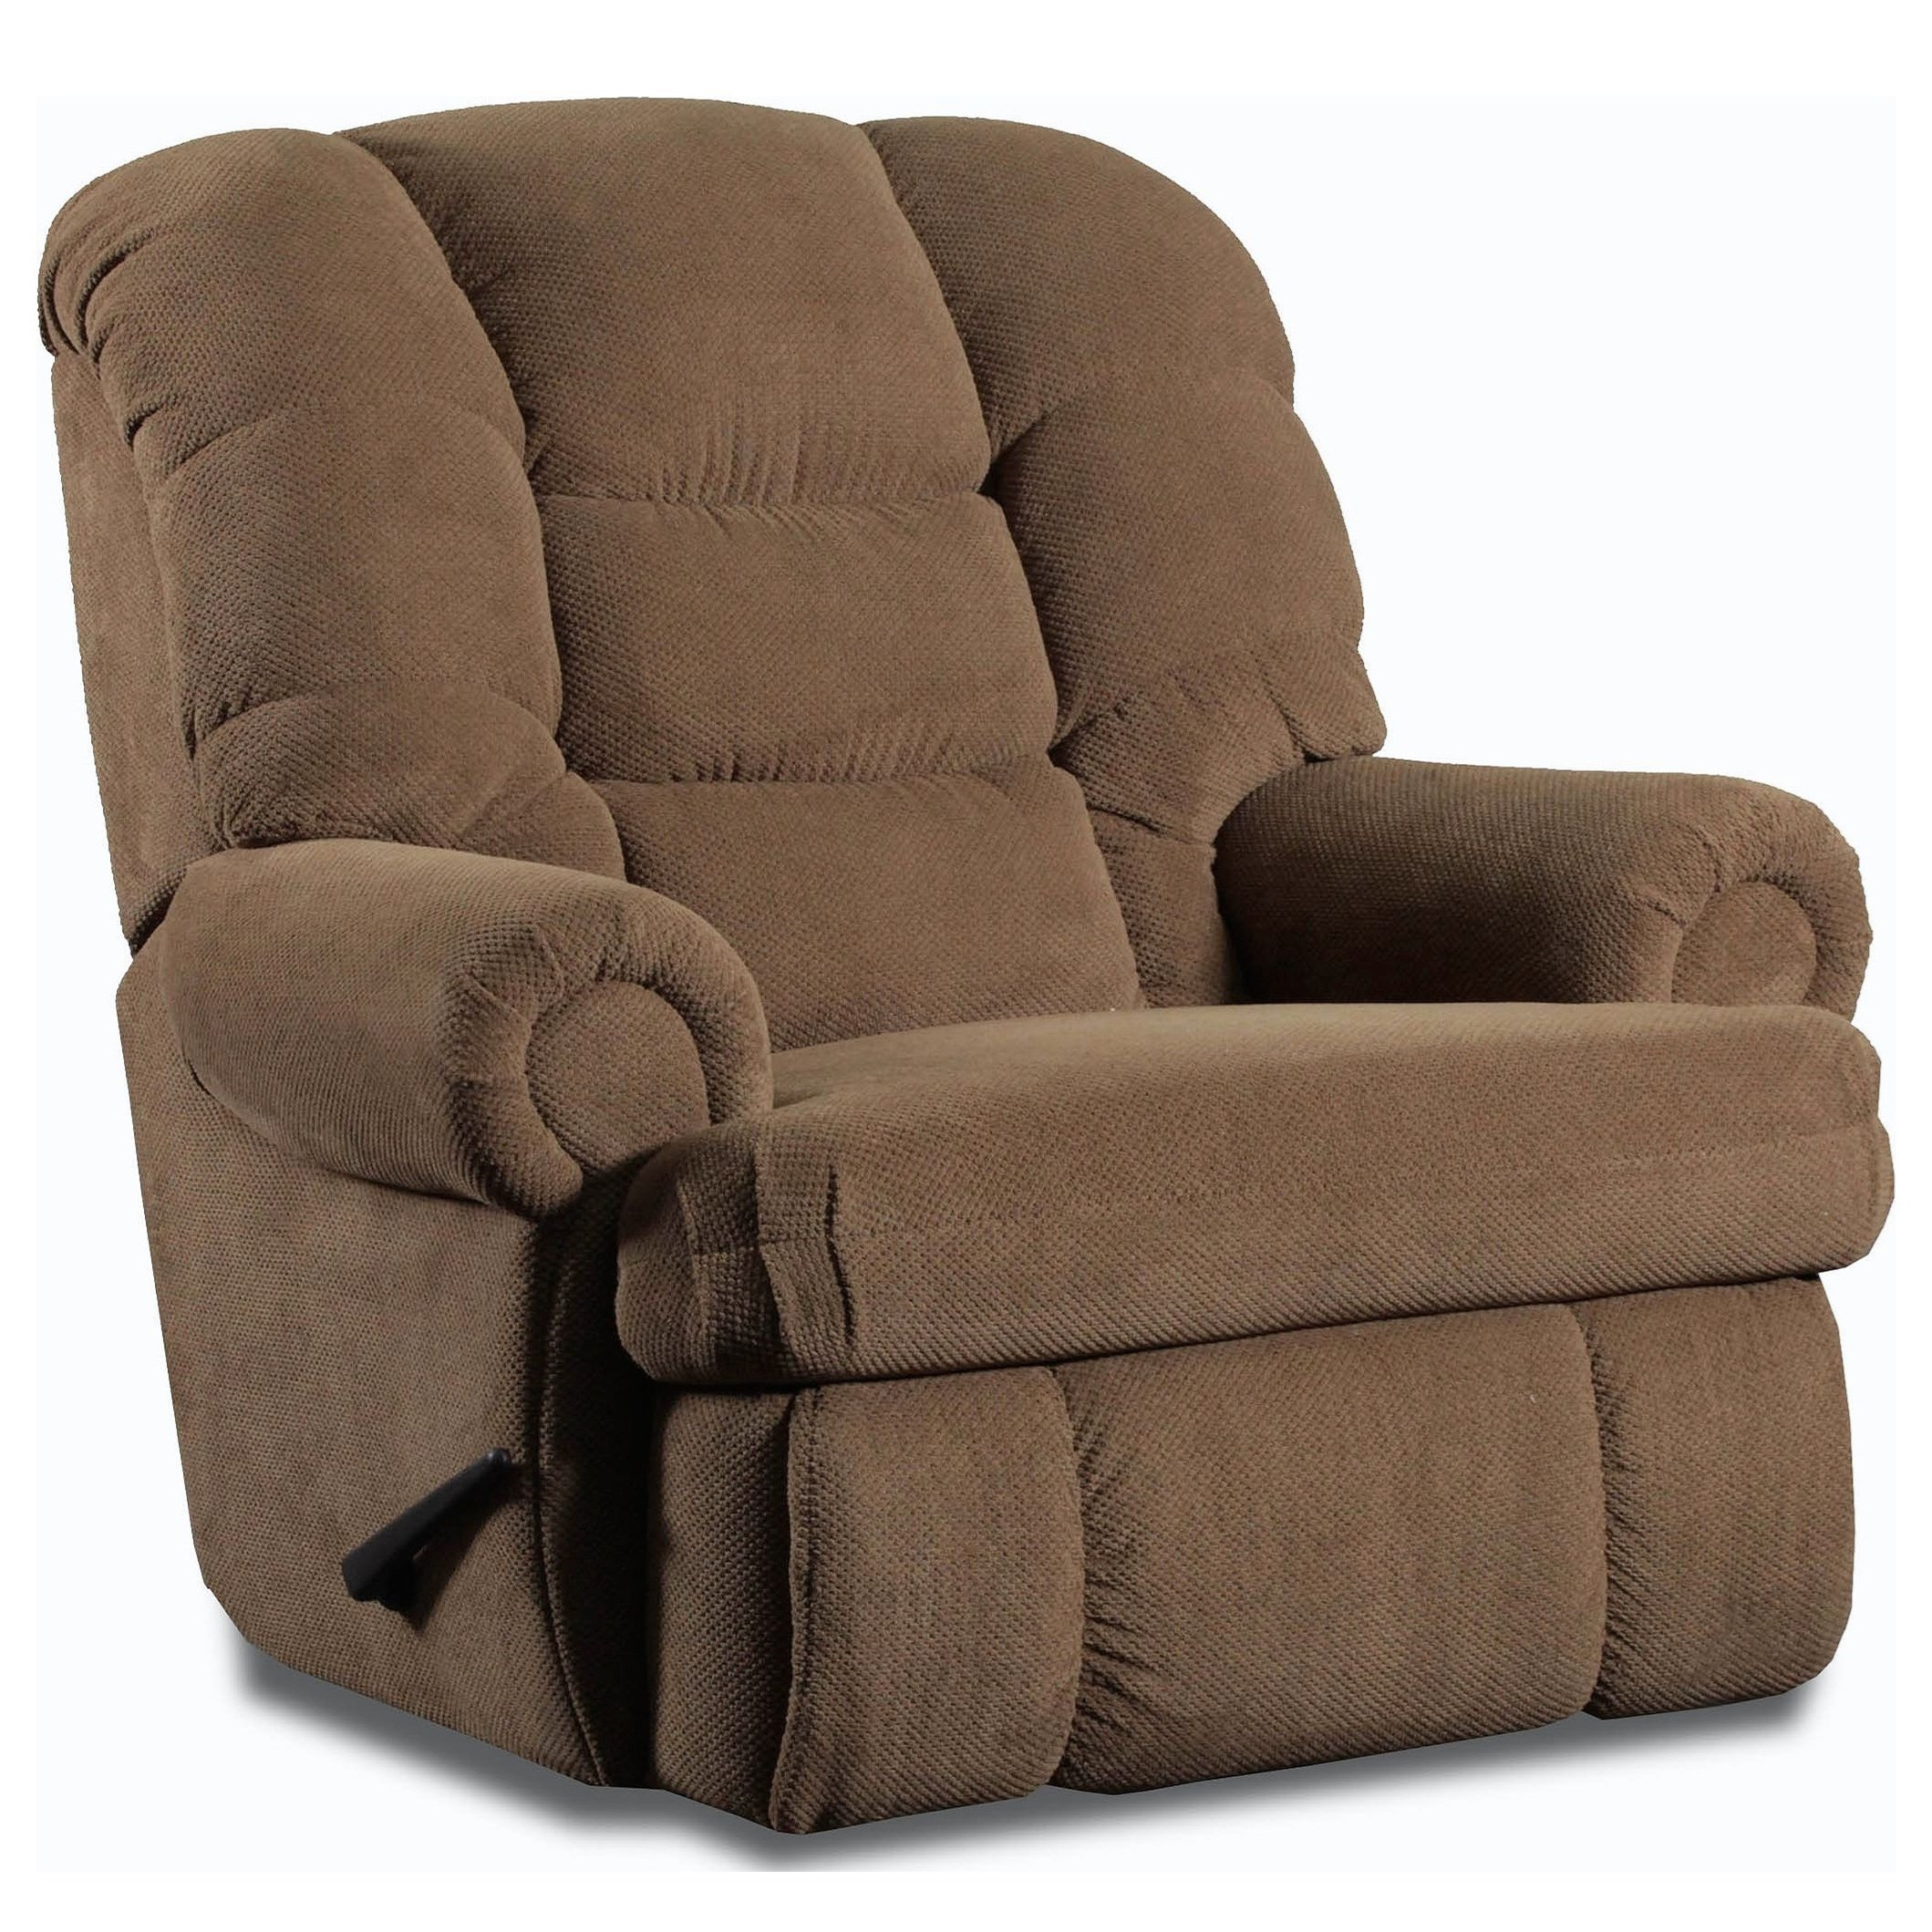 Lane Stallion Comfortking Wall Saver Recliner With Power Recline